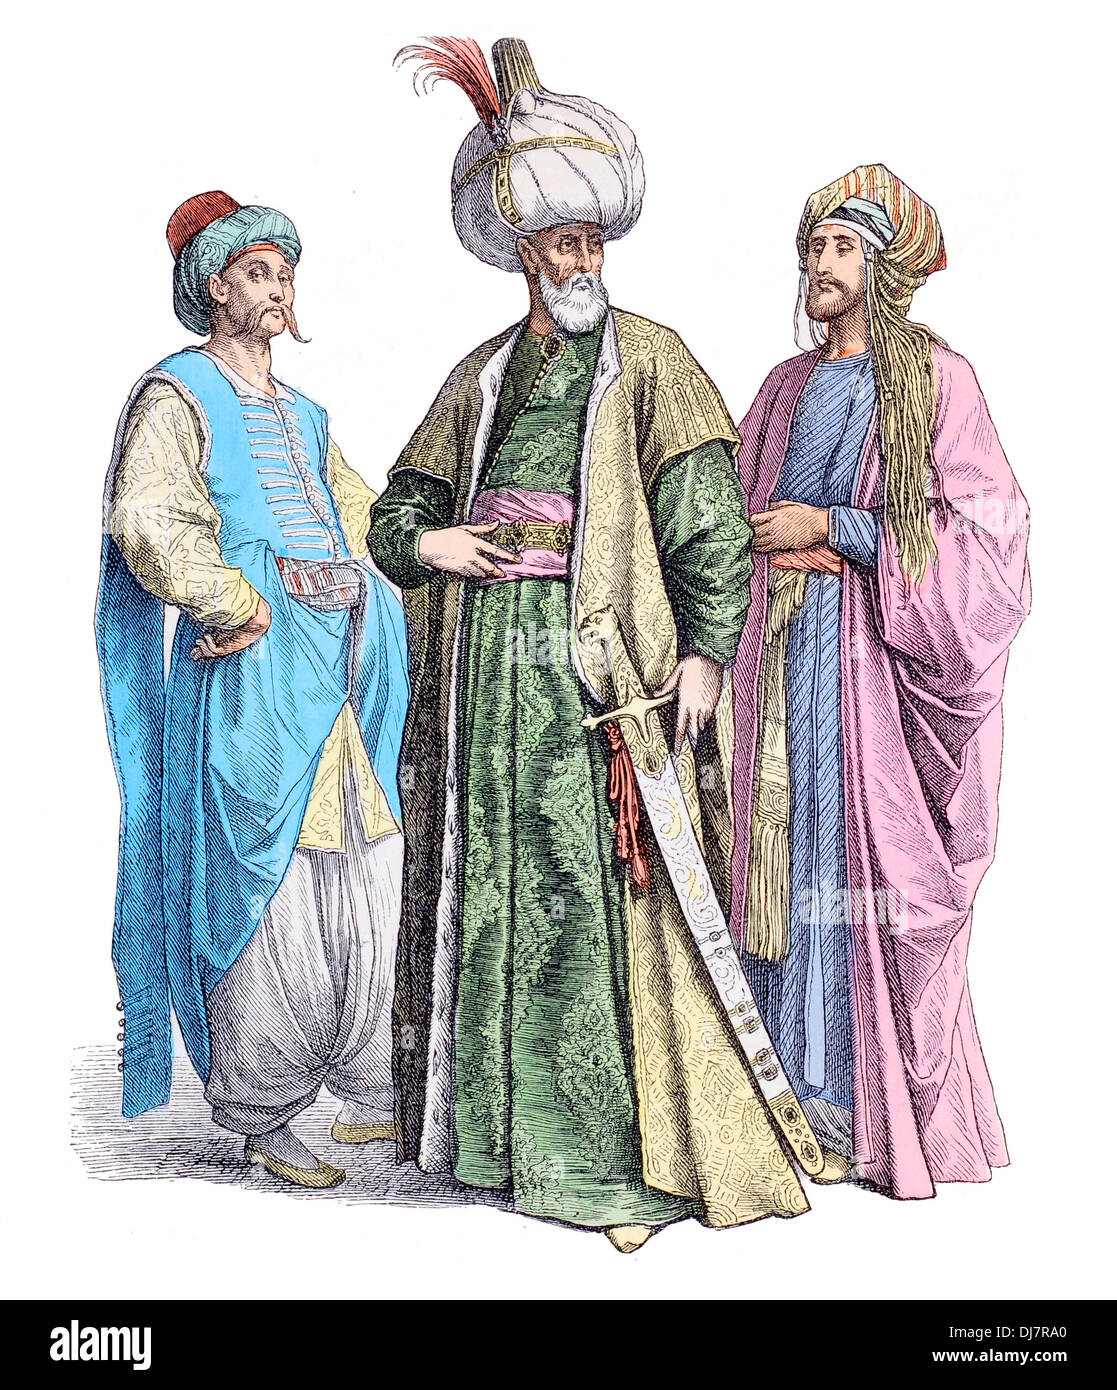 Ottoman Clothes Stock Photos Ottoman Clothes Stock Images Alamy